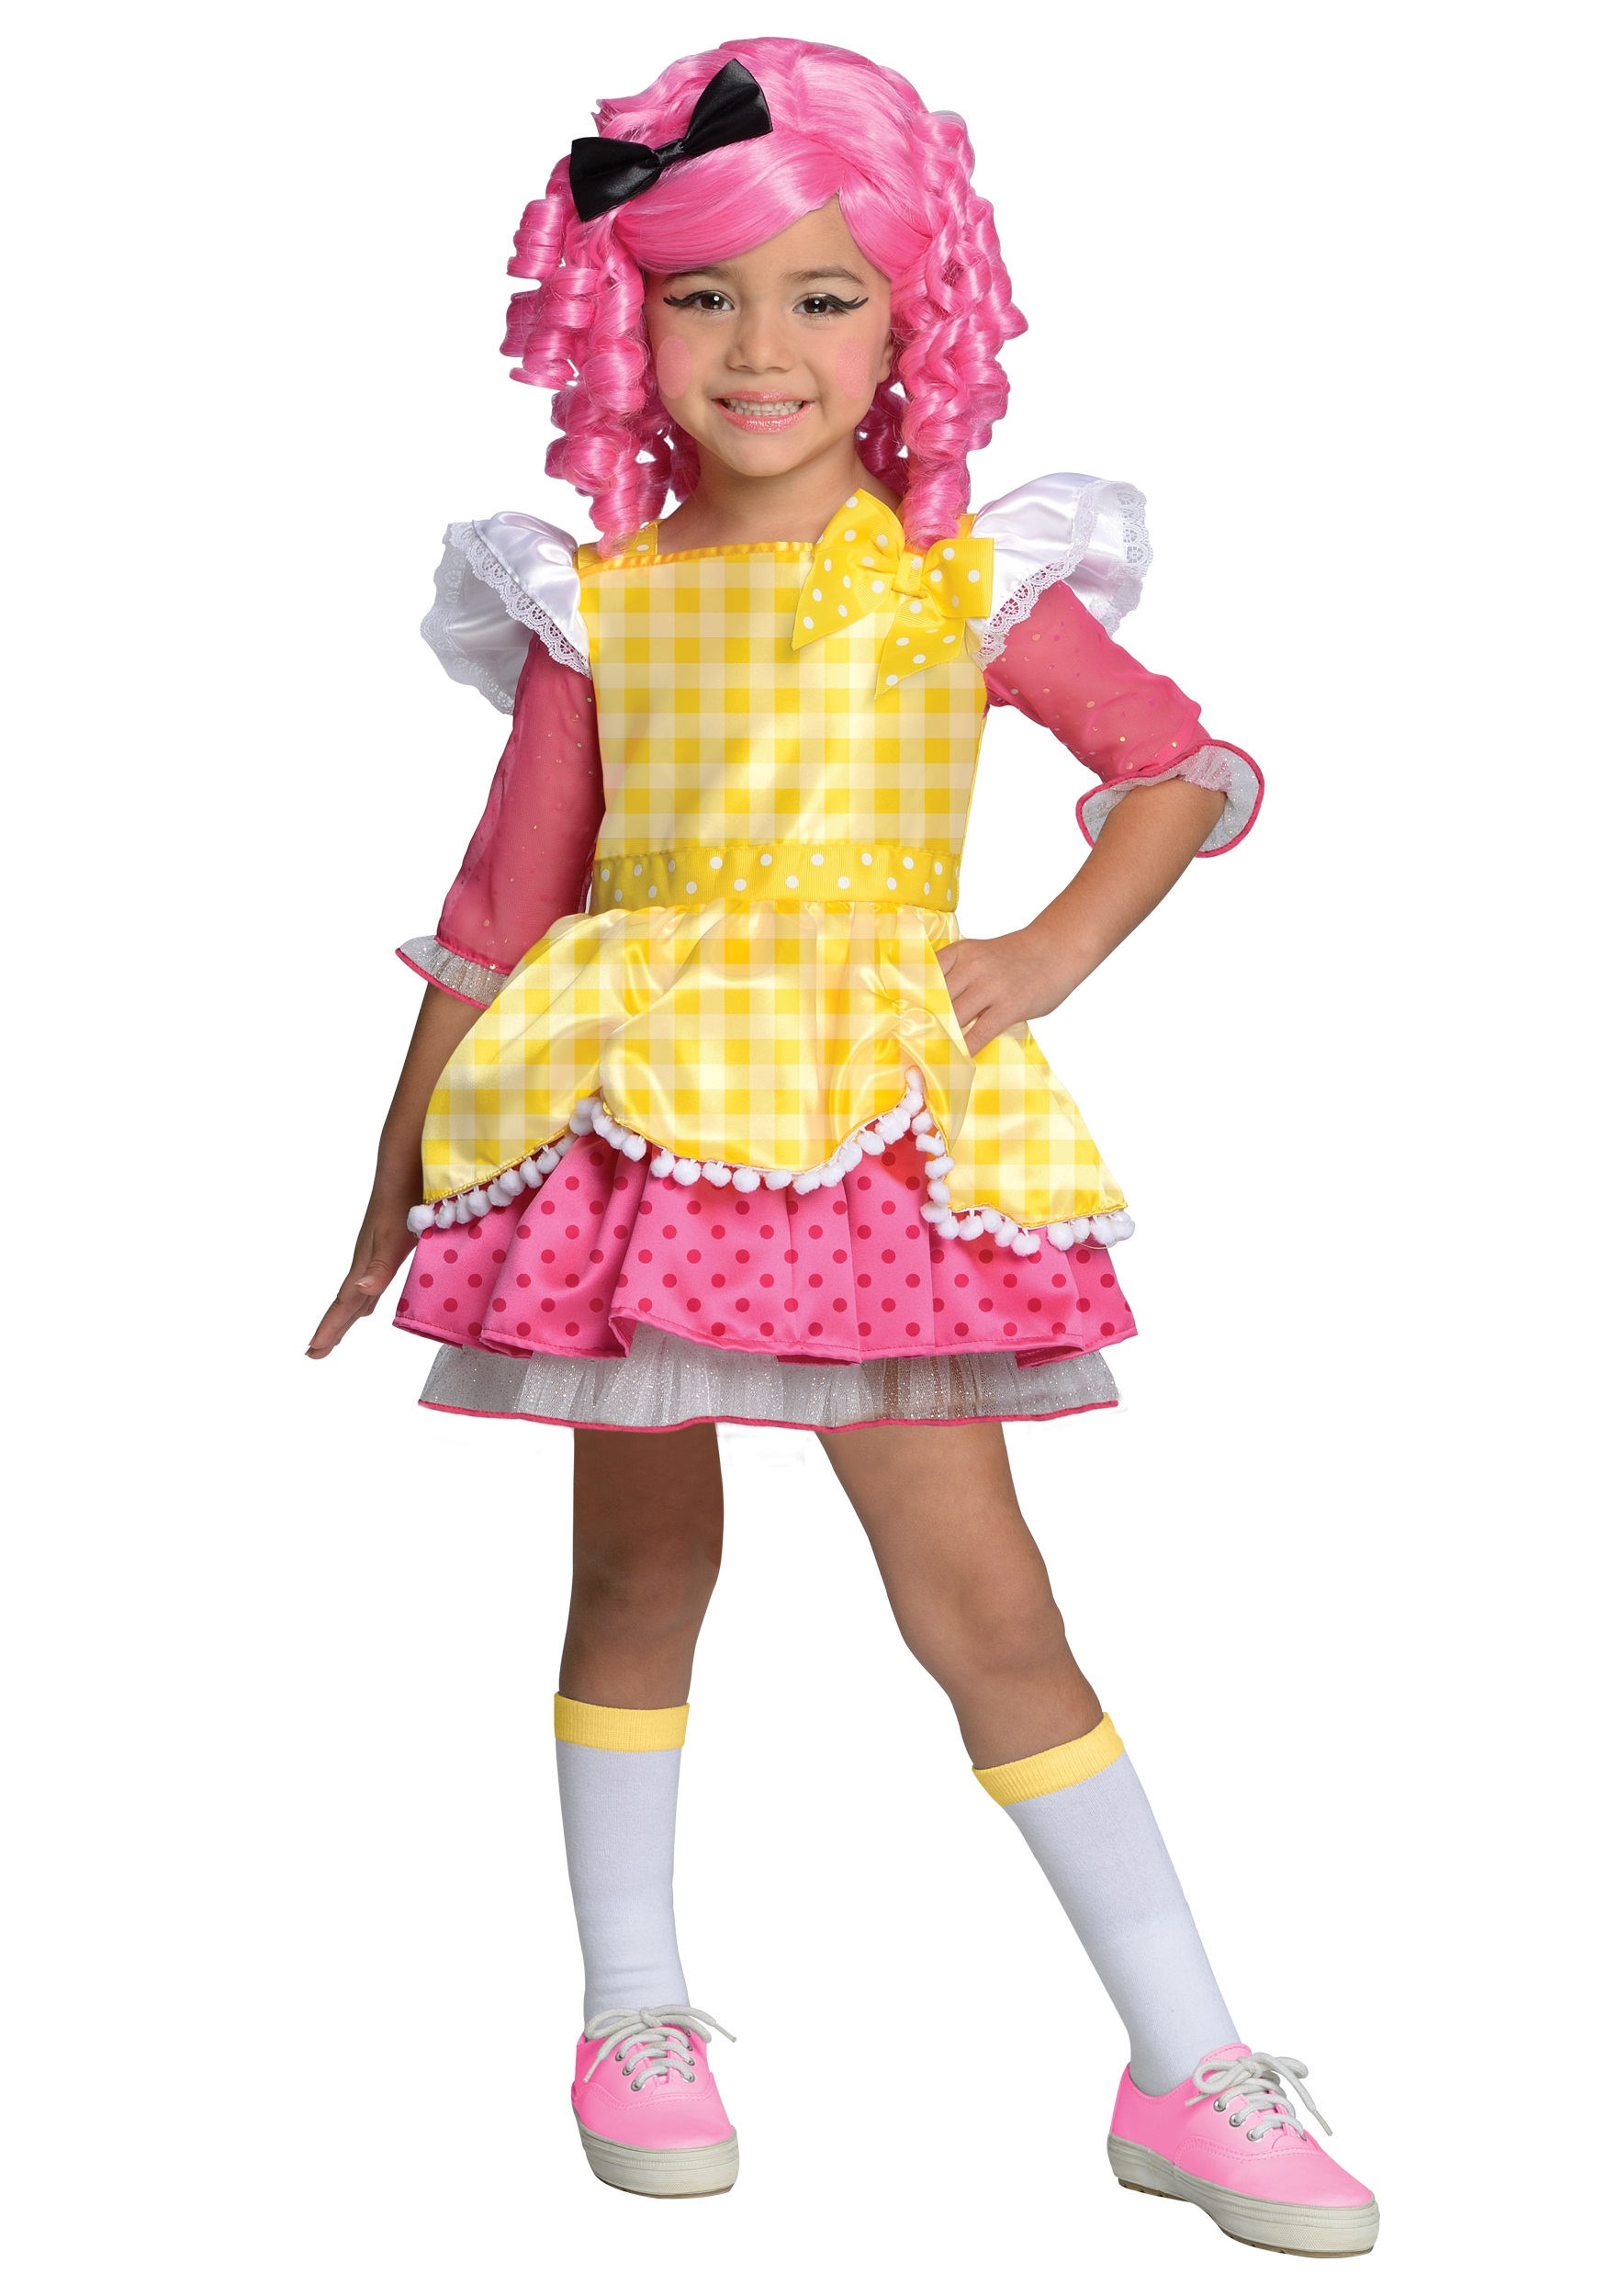 Girls Lalaloopsy Crumbs Sugar Cookie Costume  sc 1 st  Halloween Costumes & Girls Lalaloopsy Crumbs Sugar Cookie Costume - Halloween Costumes